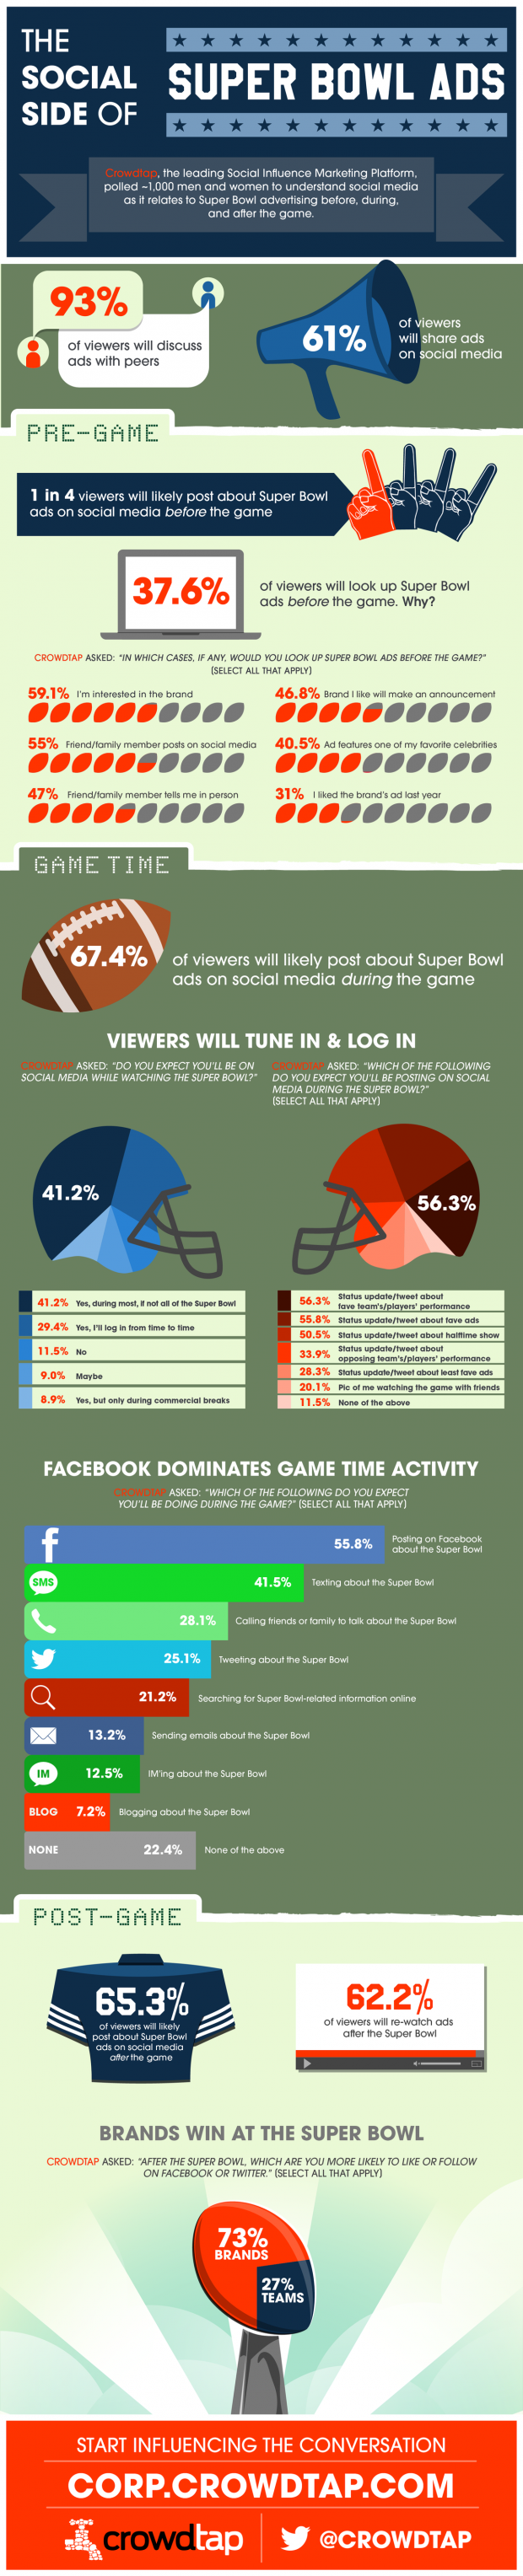 The-Social-Side-of-Super-Bowl-Ads-Revised-for-Mashable